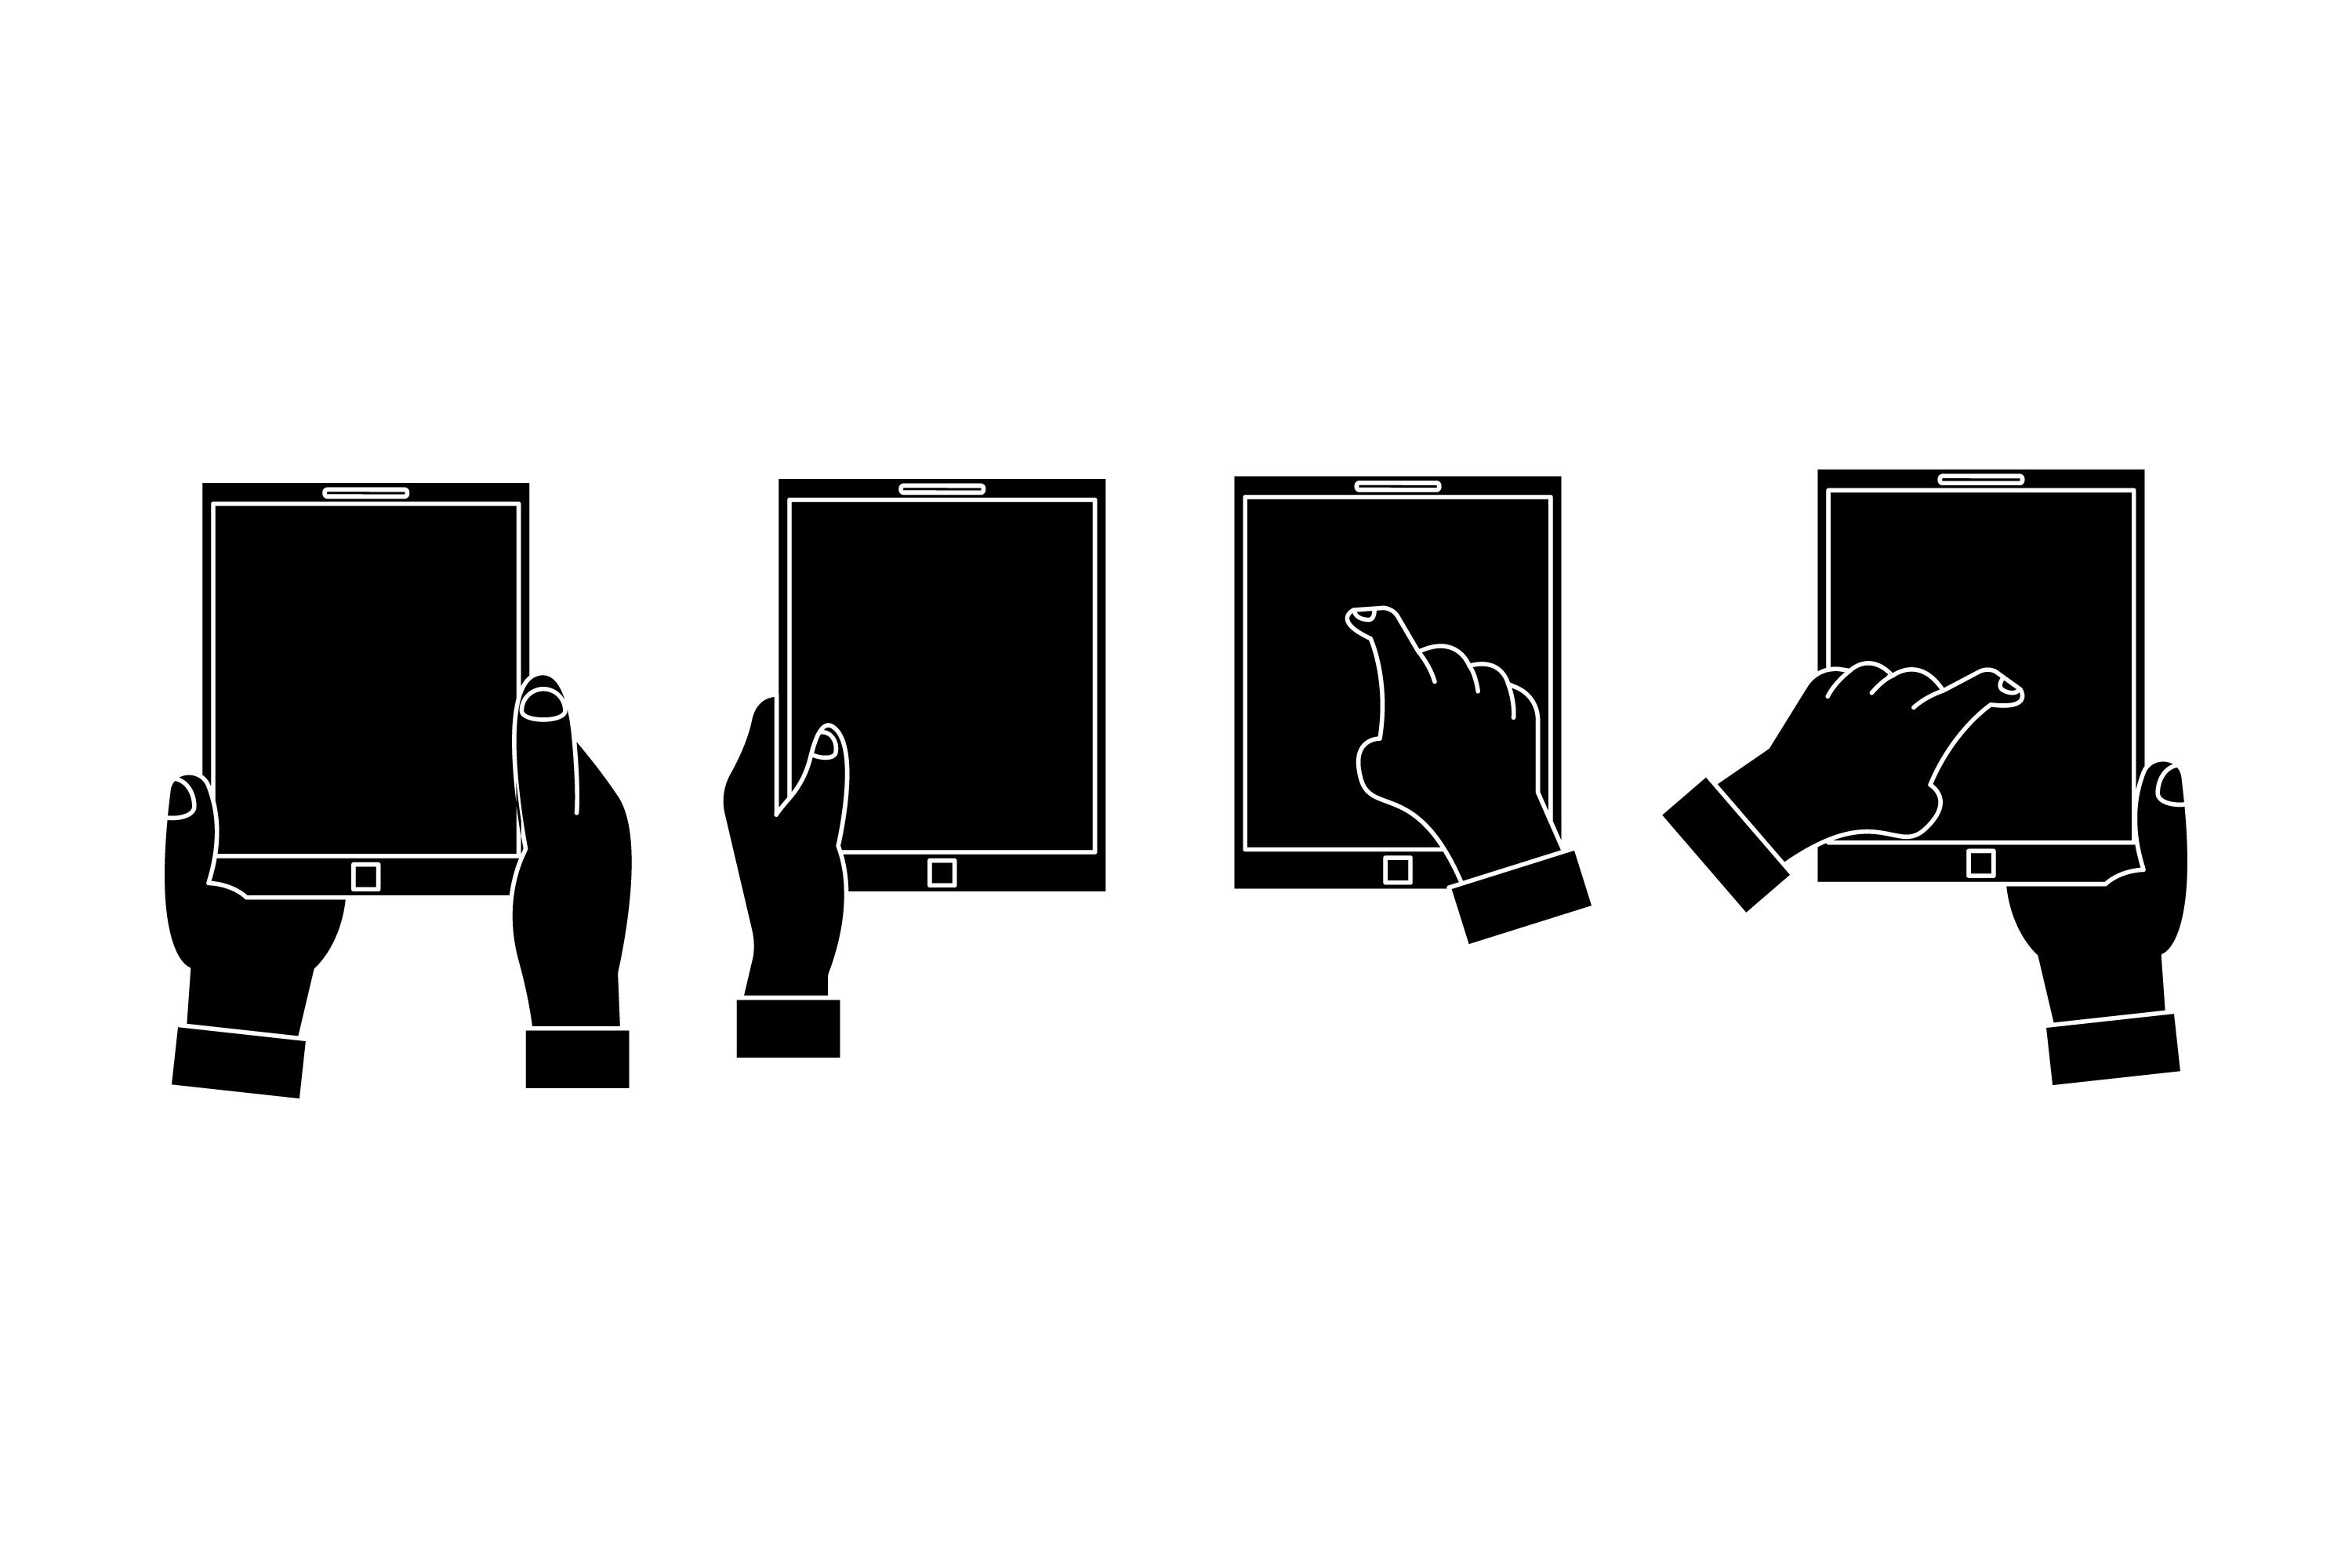 Mobile Phone Silhouettes example image 1